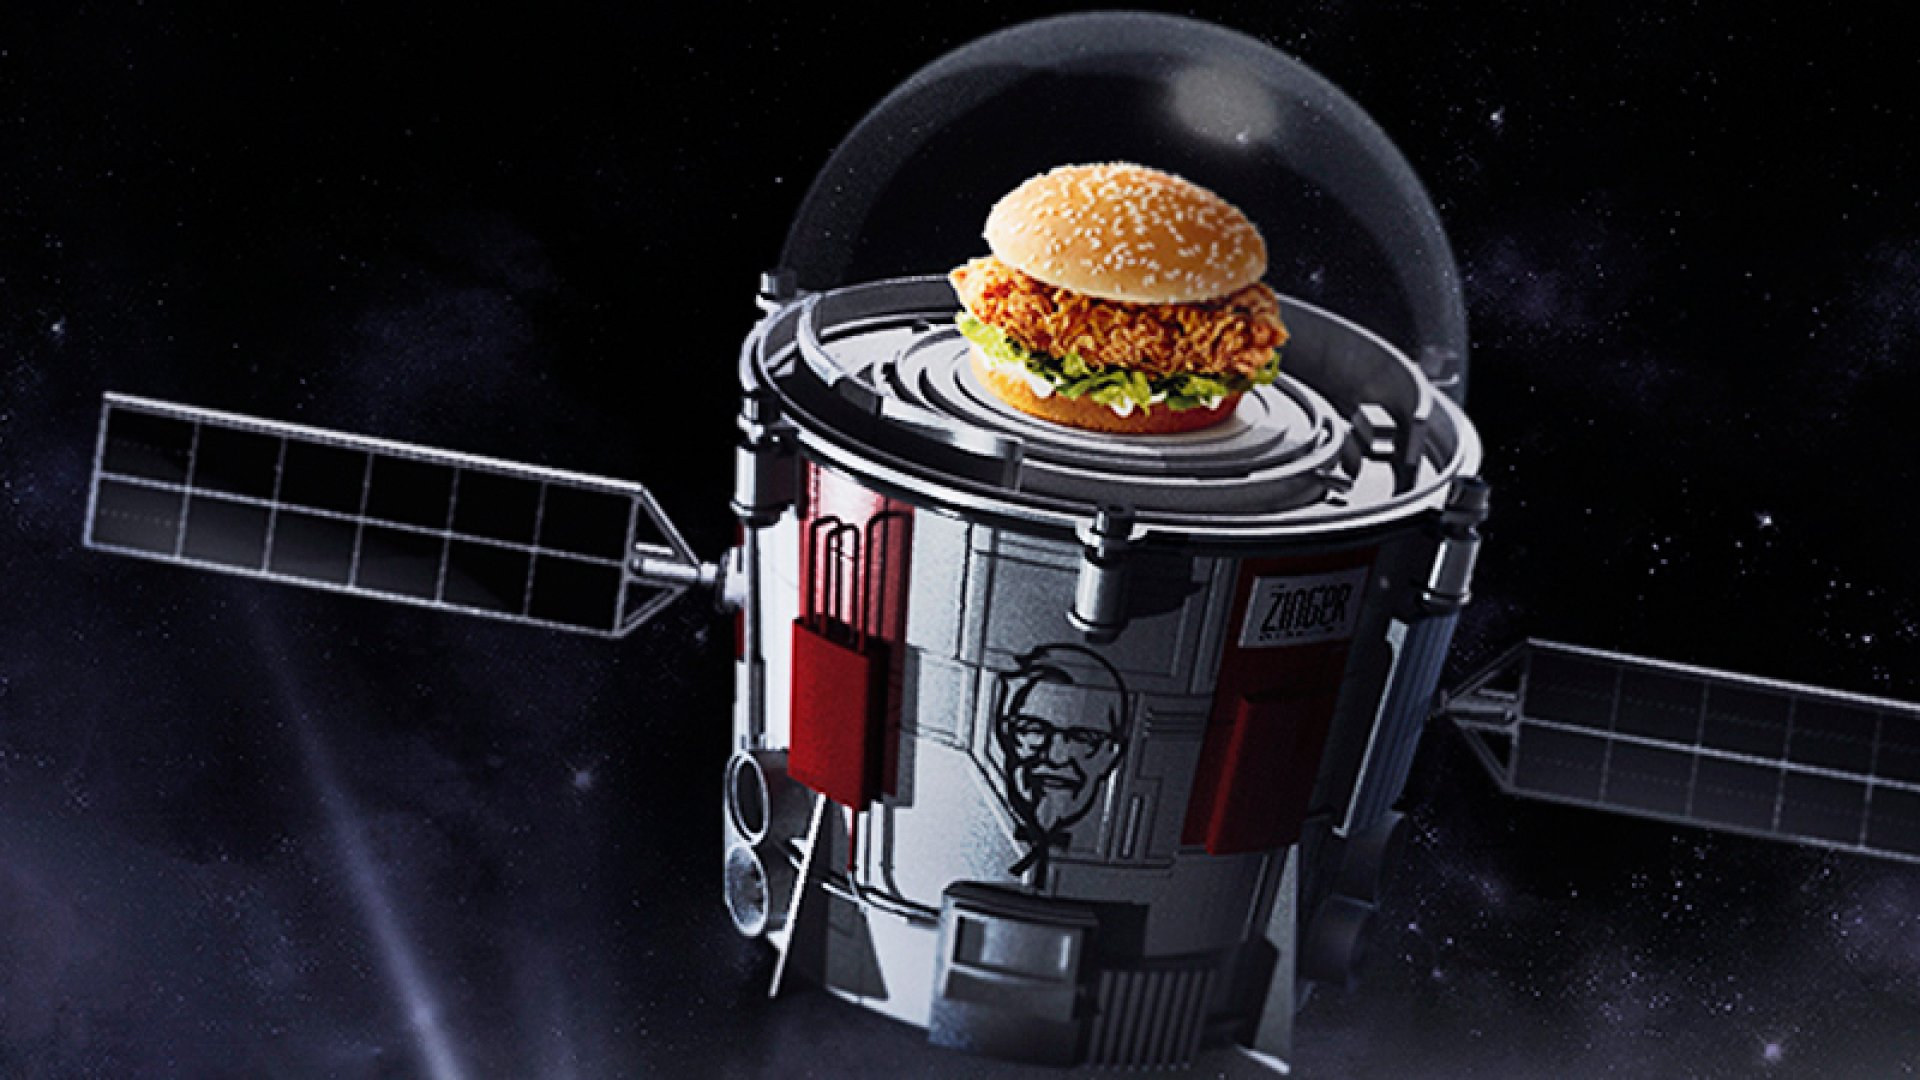 KFC's Latest Promotion Is Out of This World